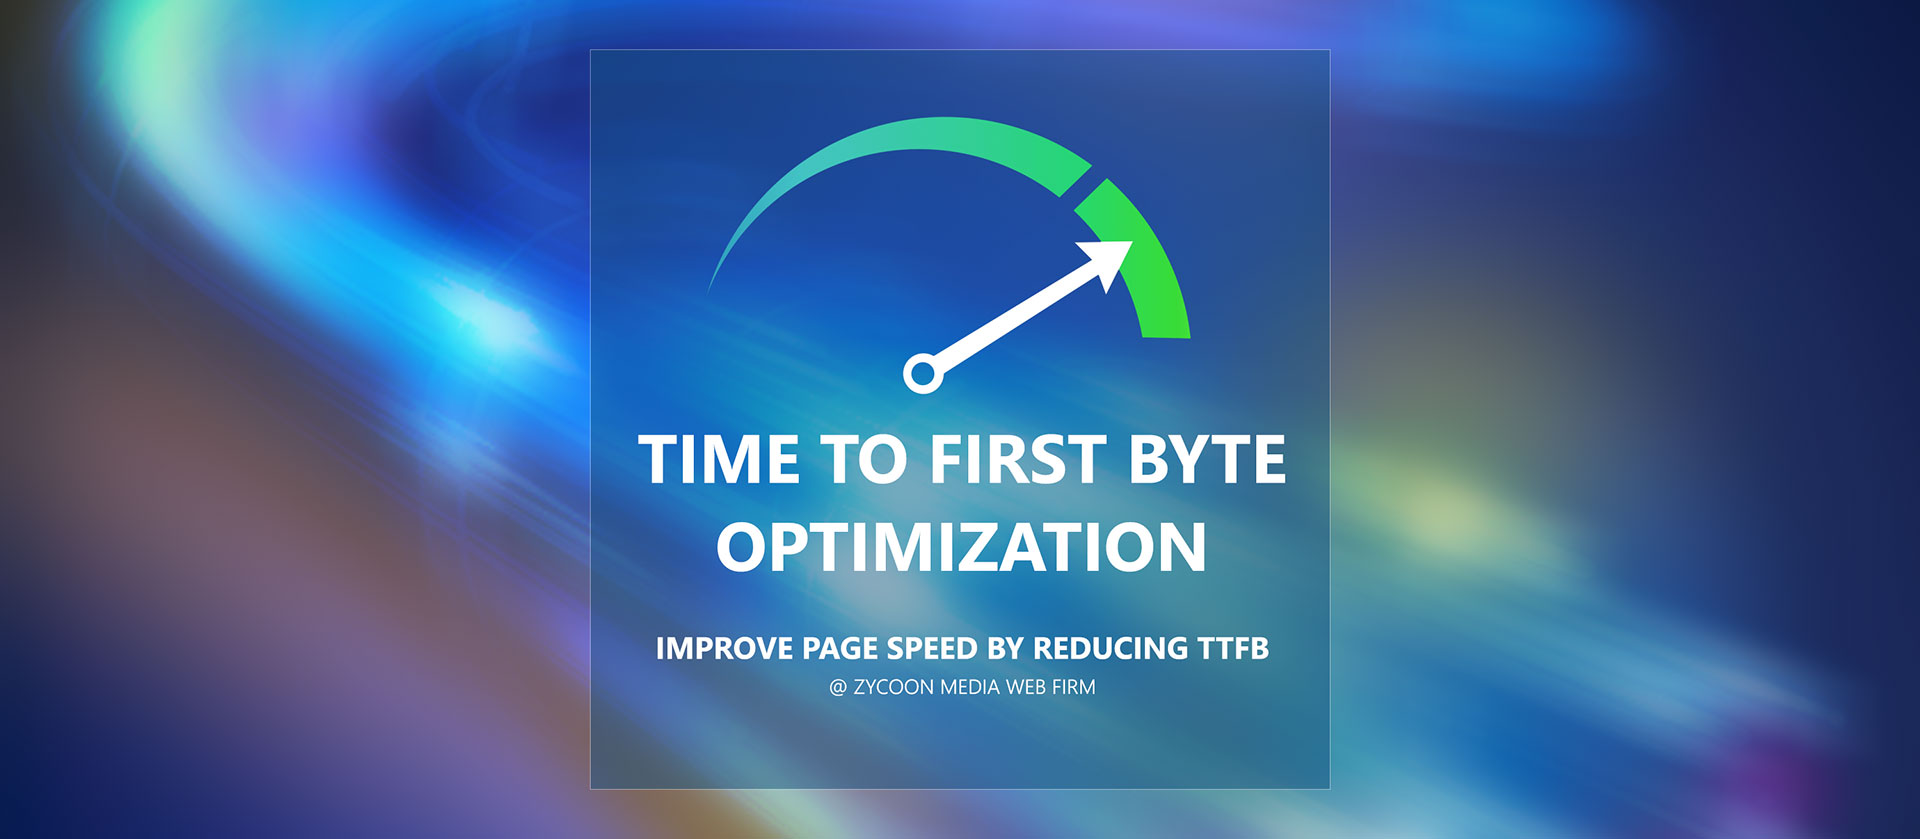 Time To First Byte Optimization